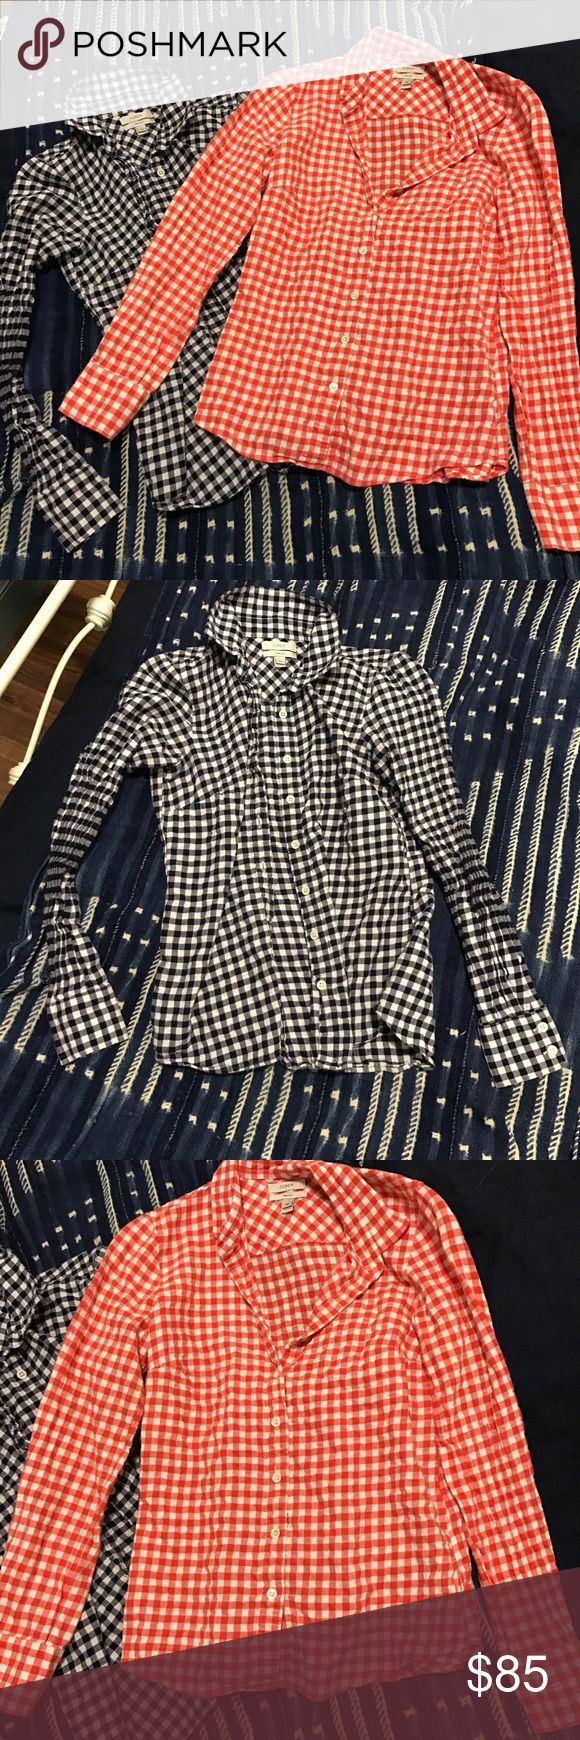 Gingham Shirt Bundle- JCrew Bundle of two gingham shirts from JCrew. One orange and white, and the other navy and white. Flannel material. Perfect shirt fit. Can be purchased separately, but bundled for a discount. Originally $89 each. J. Crew Tops Button Down Shirts